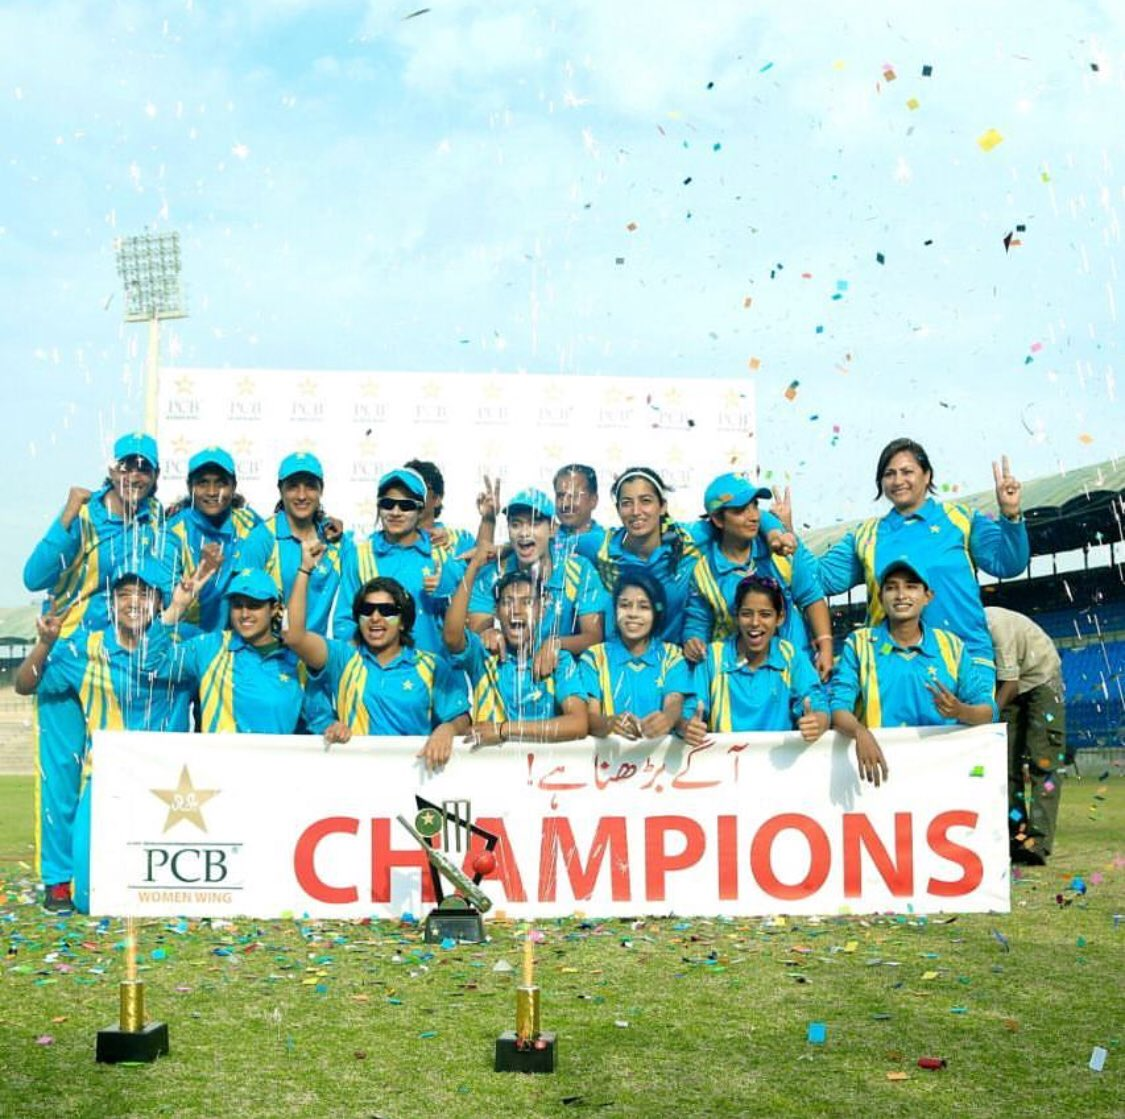 Congrats to PCB Dynamites on winning the...